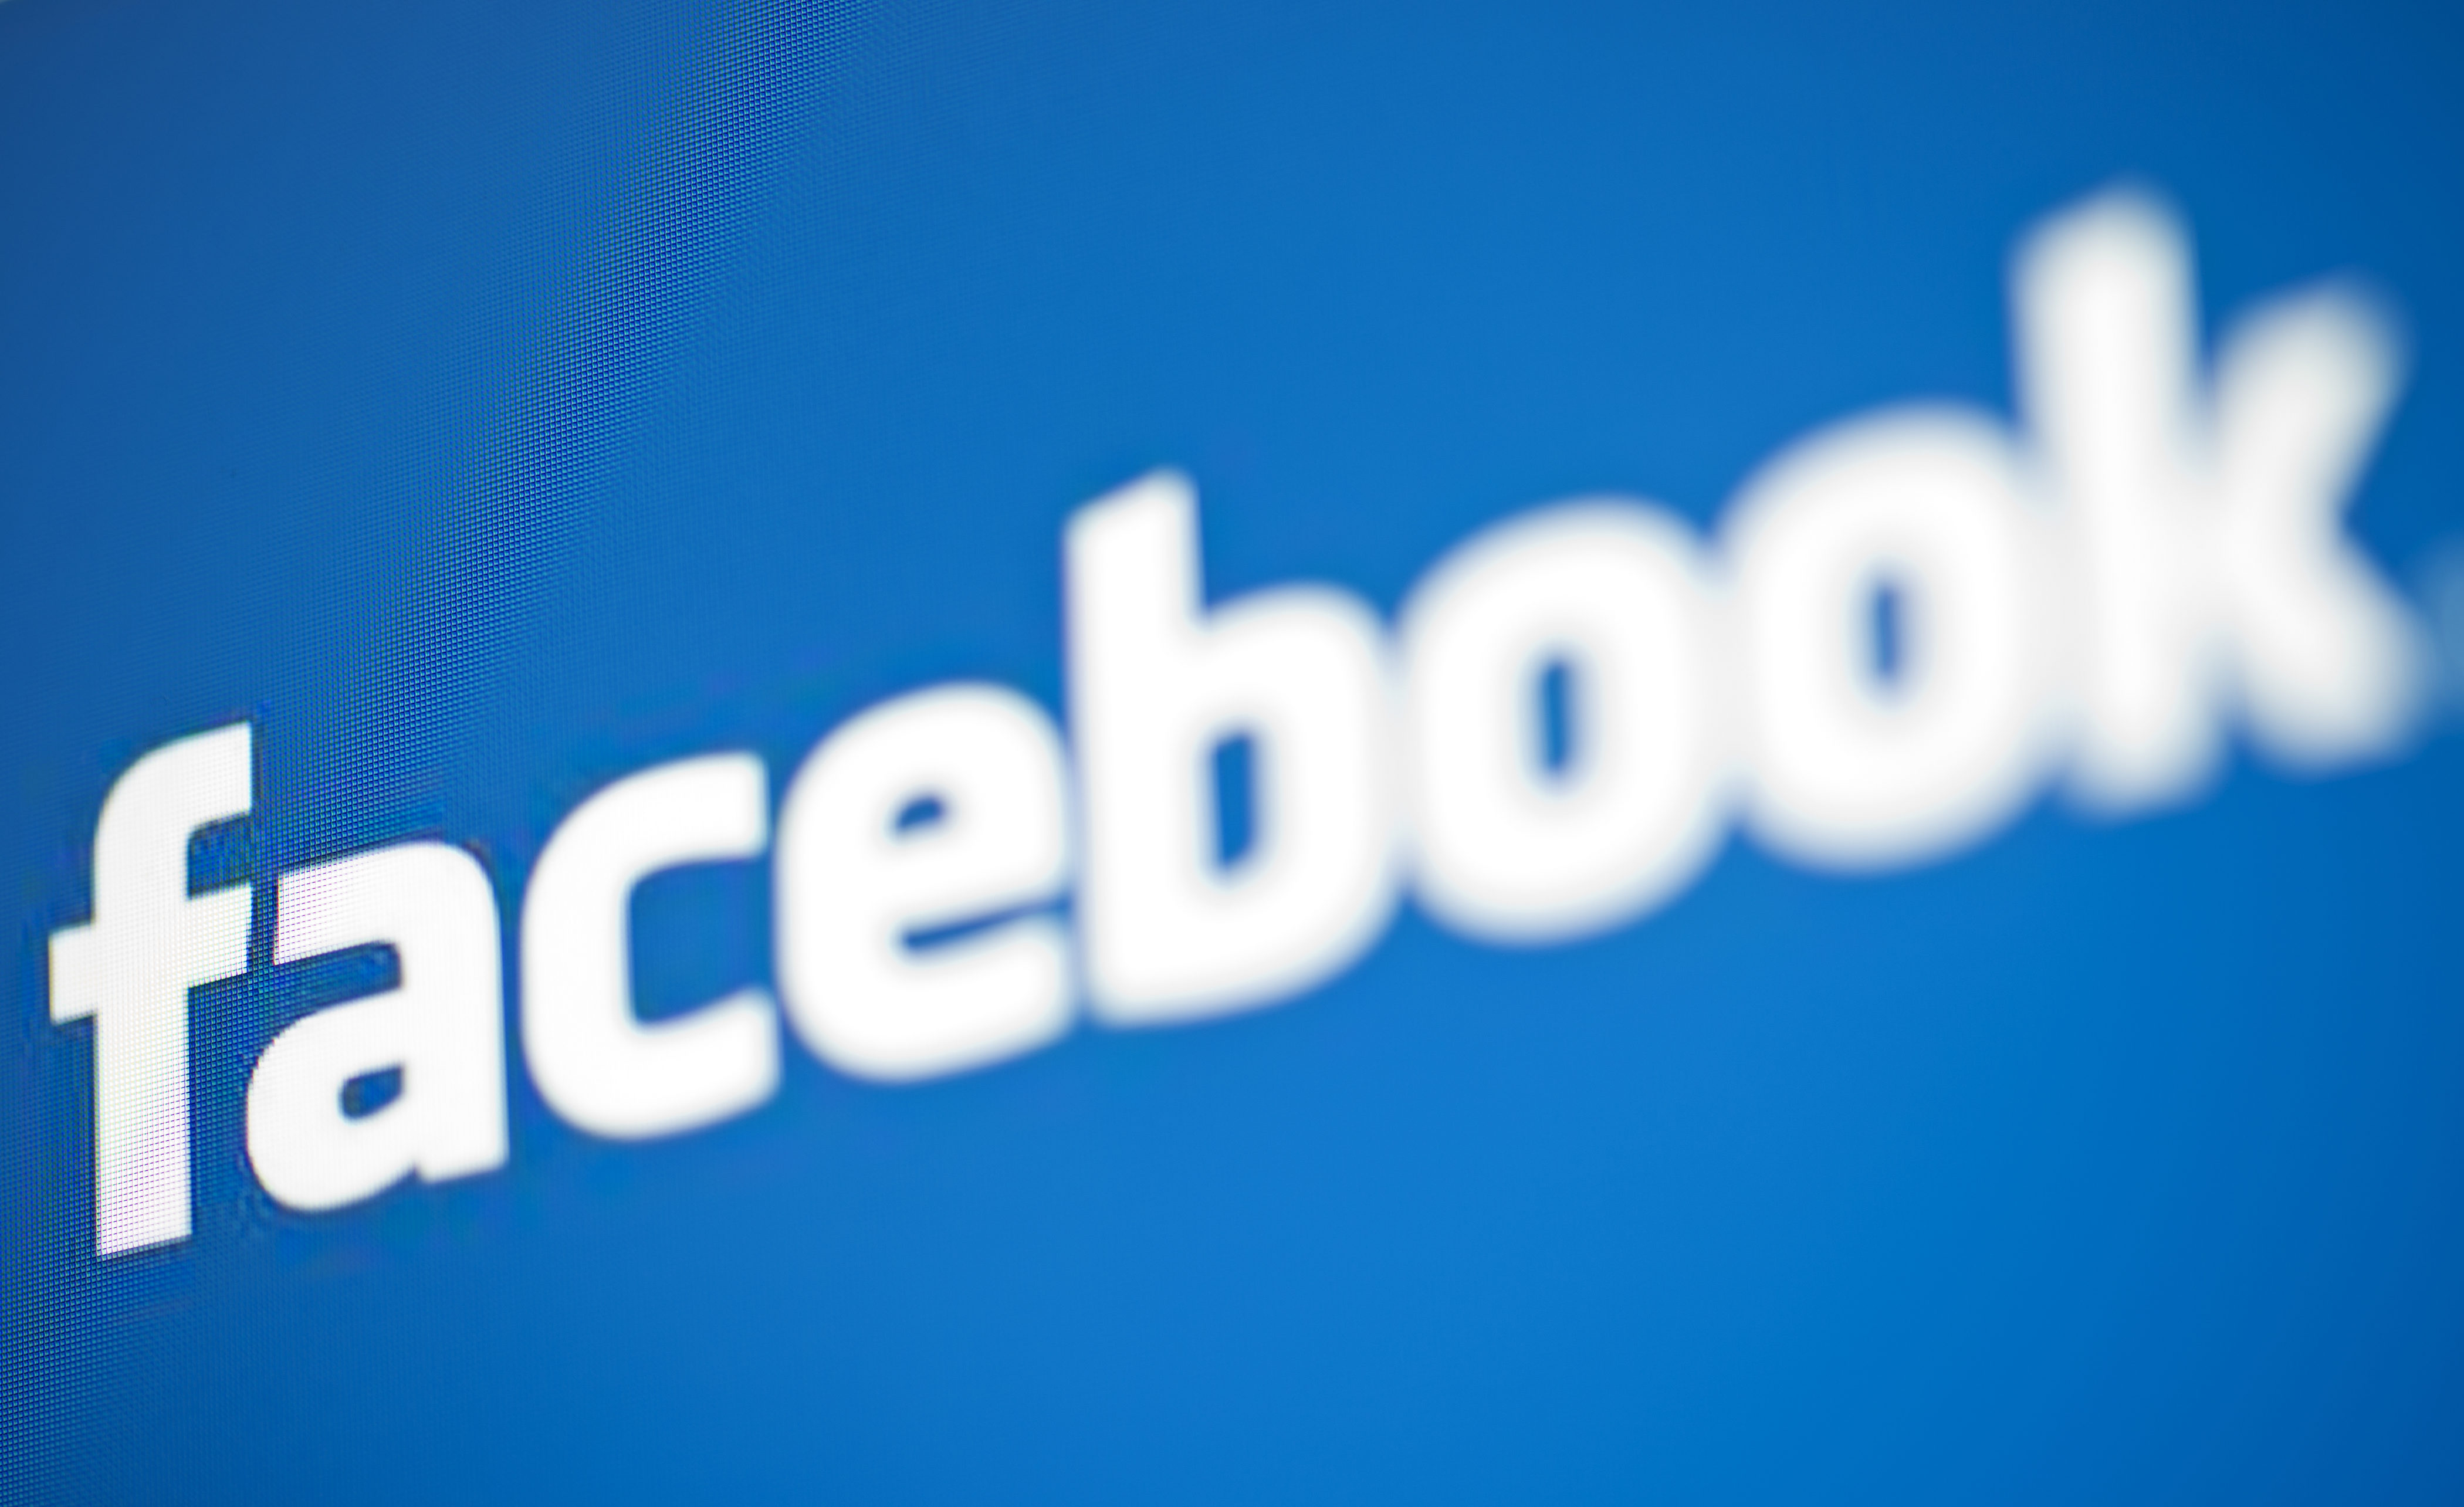 Twitter Co-Founder Biz Stone to Facebook: Subscription Without Ads